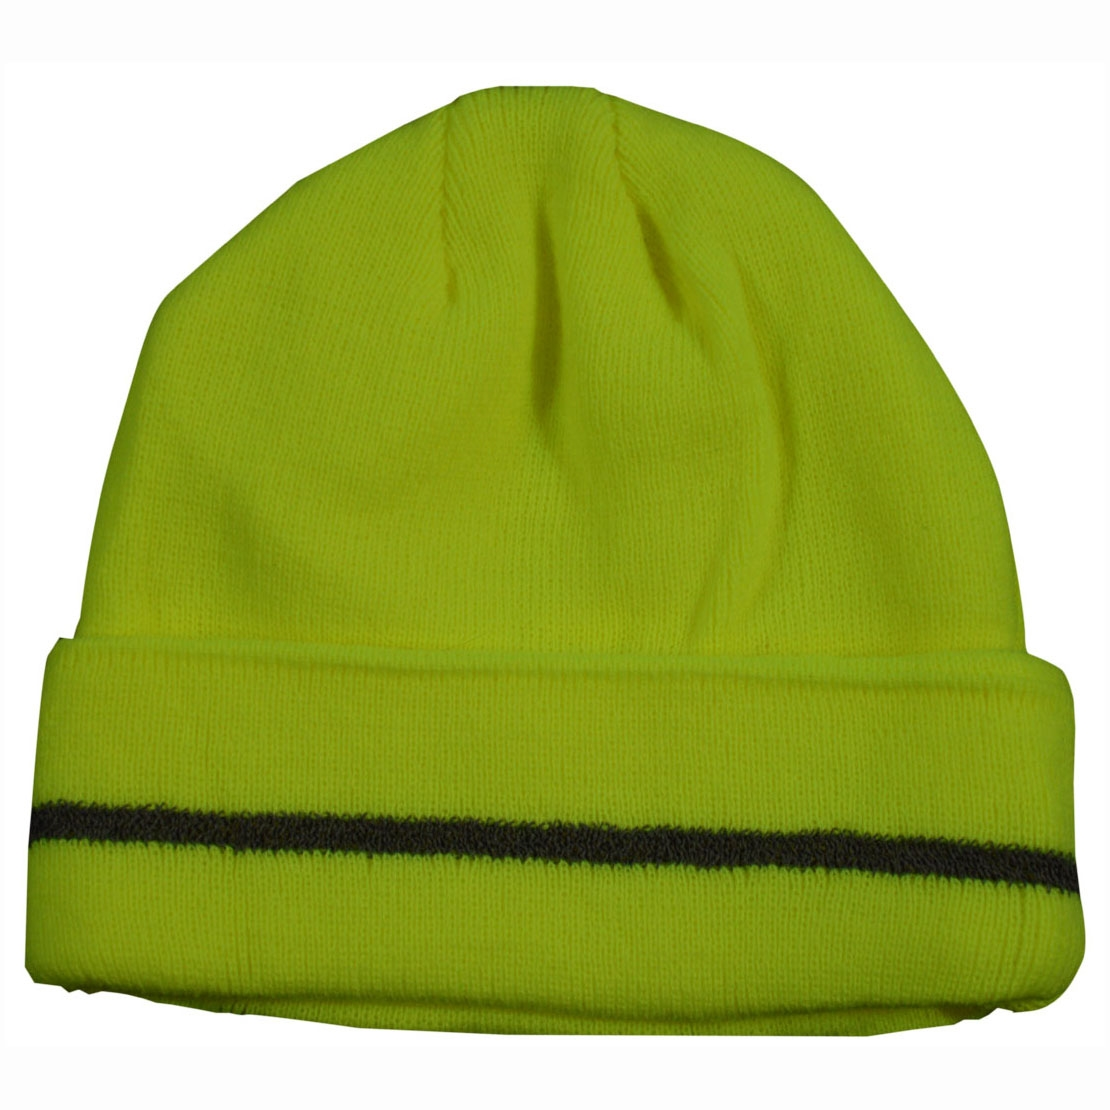 Petra Roc LBE OBE-S1 Safety Beanie Hat with Reflective Stripe 89b96e135c18